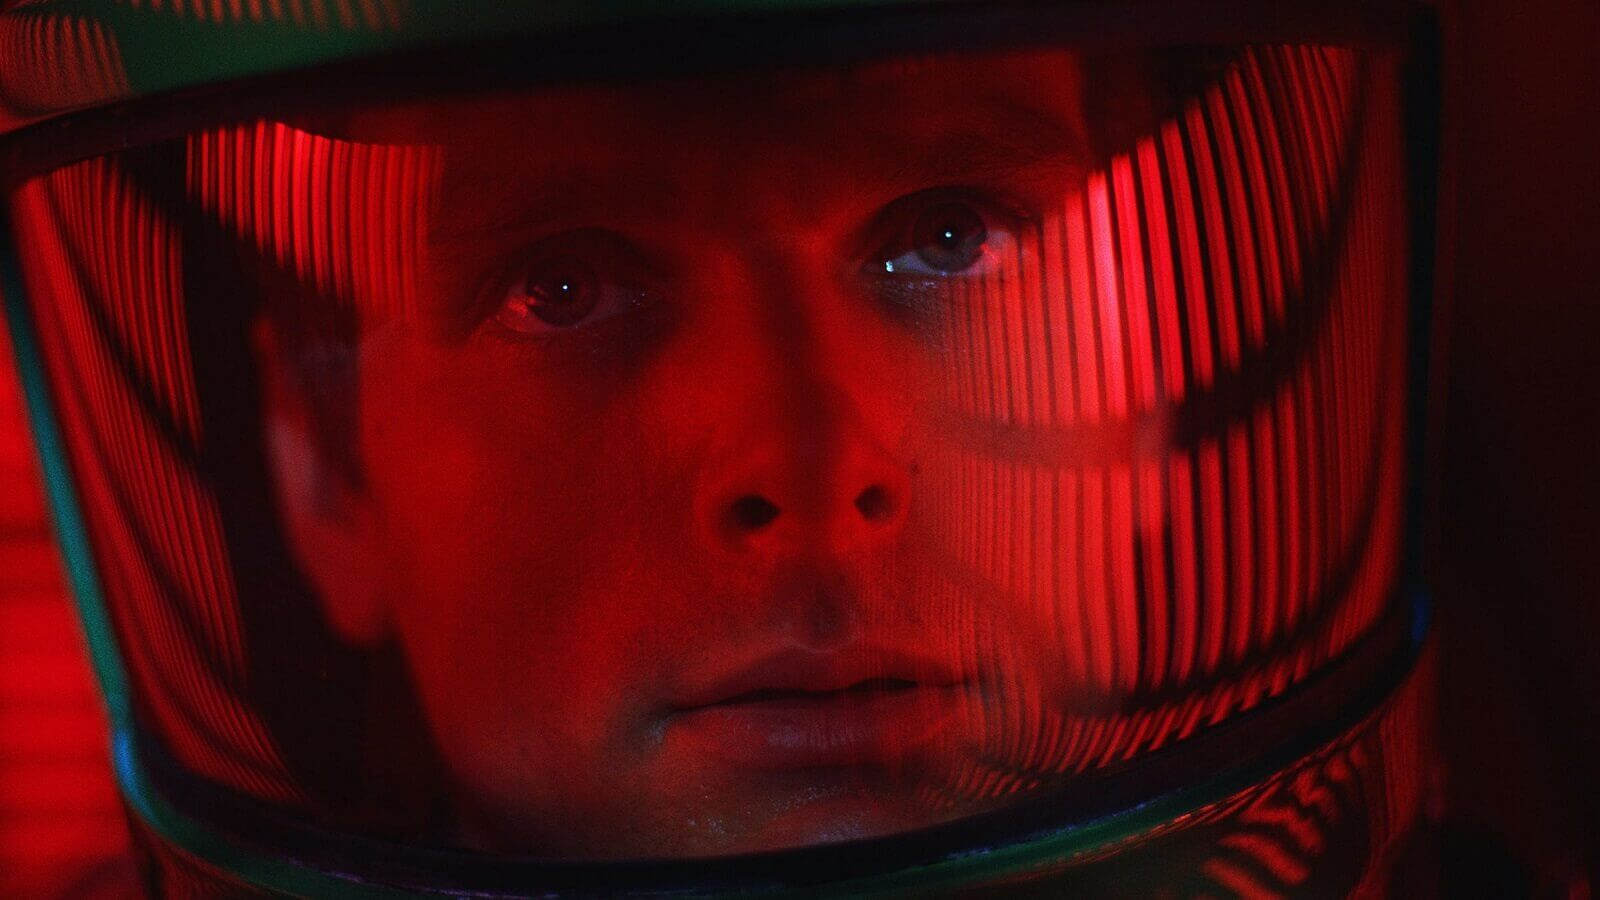 Different Meaning of Colors Lighting - 2001 A Space Odyssey